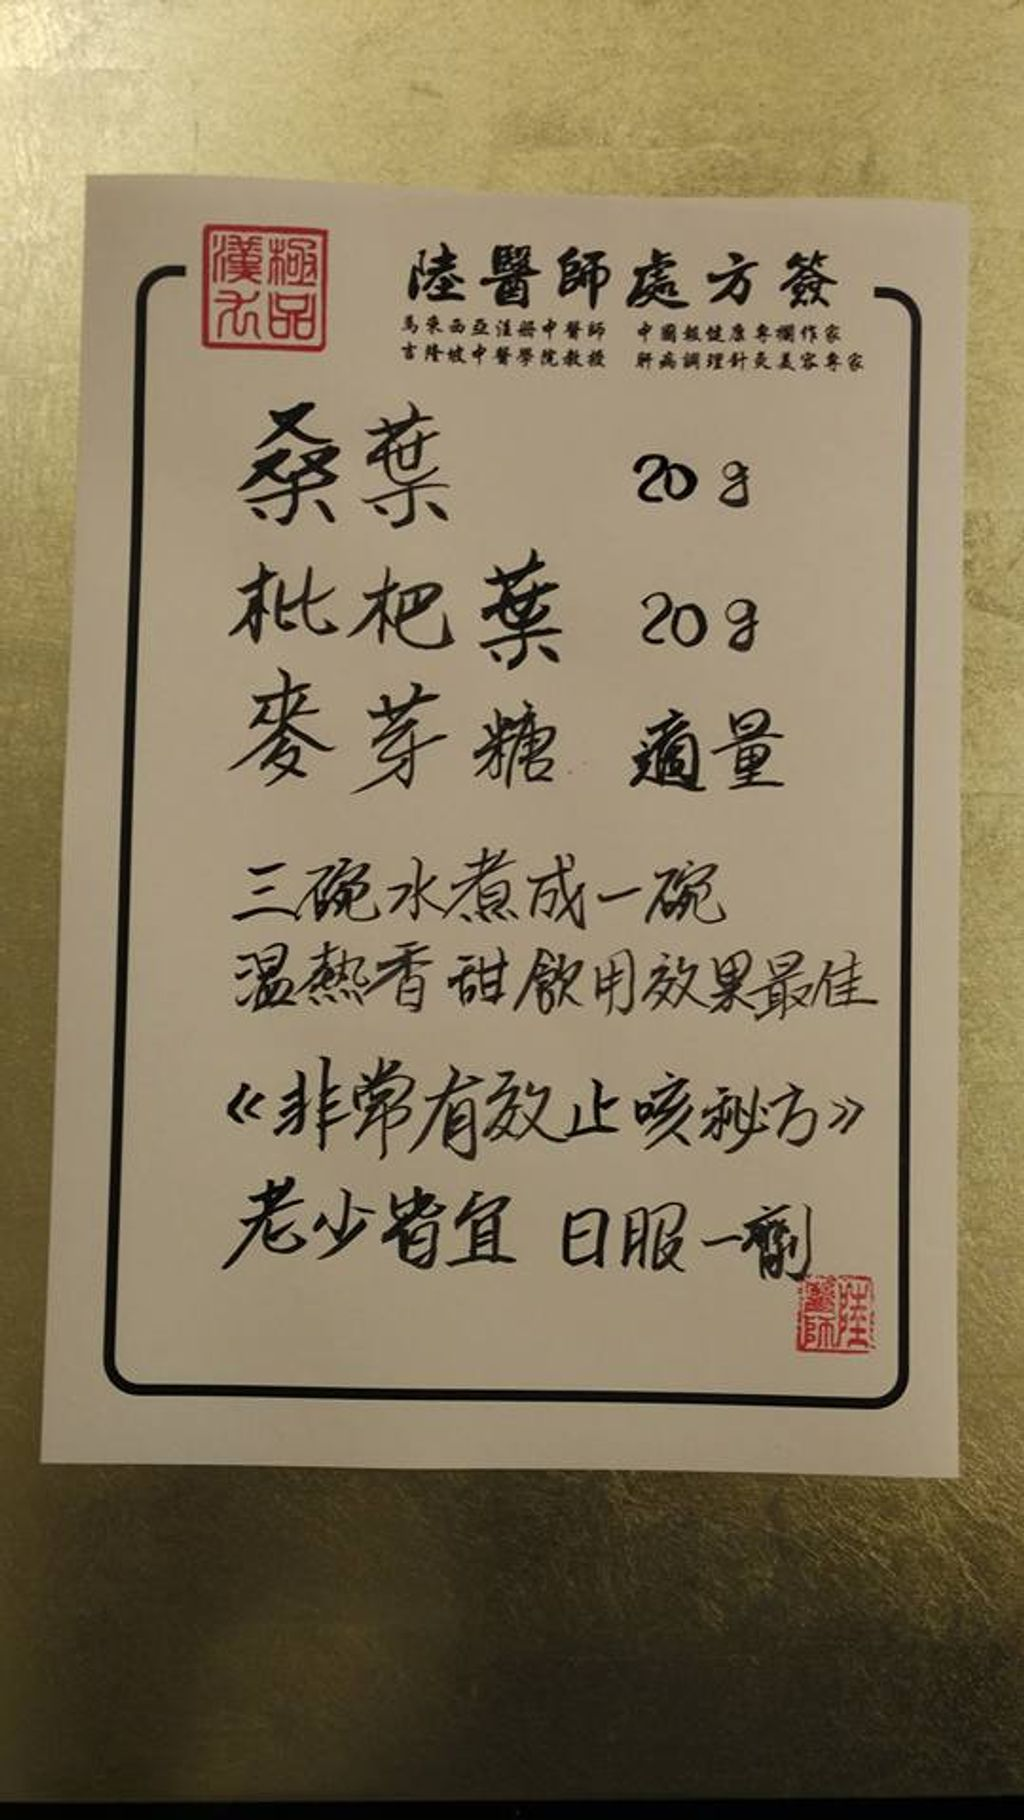 Recipe for Coughing【咳嗽】